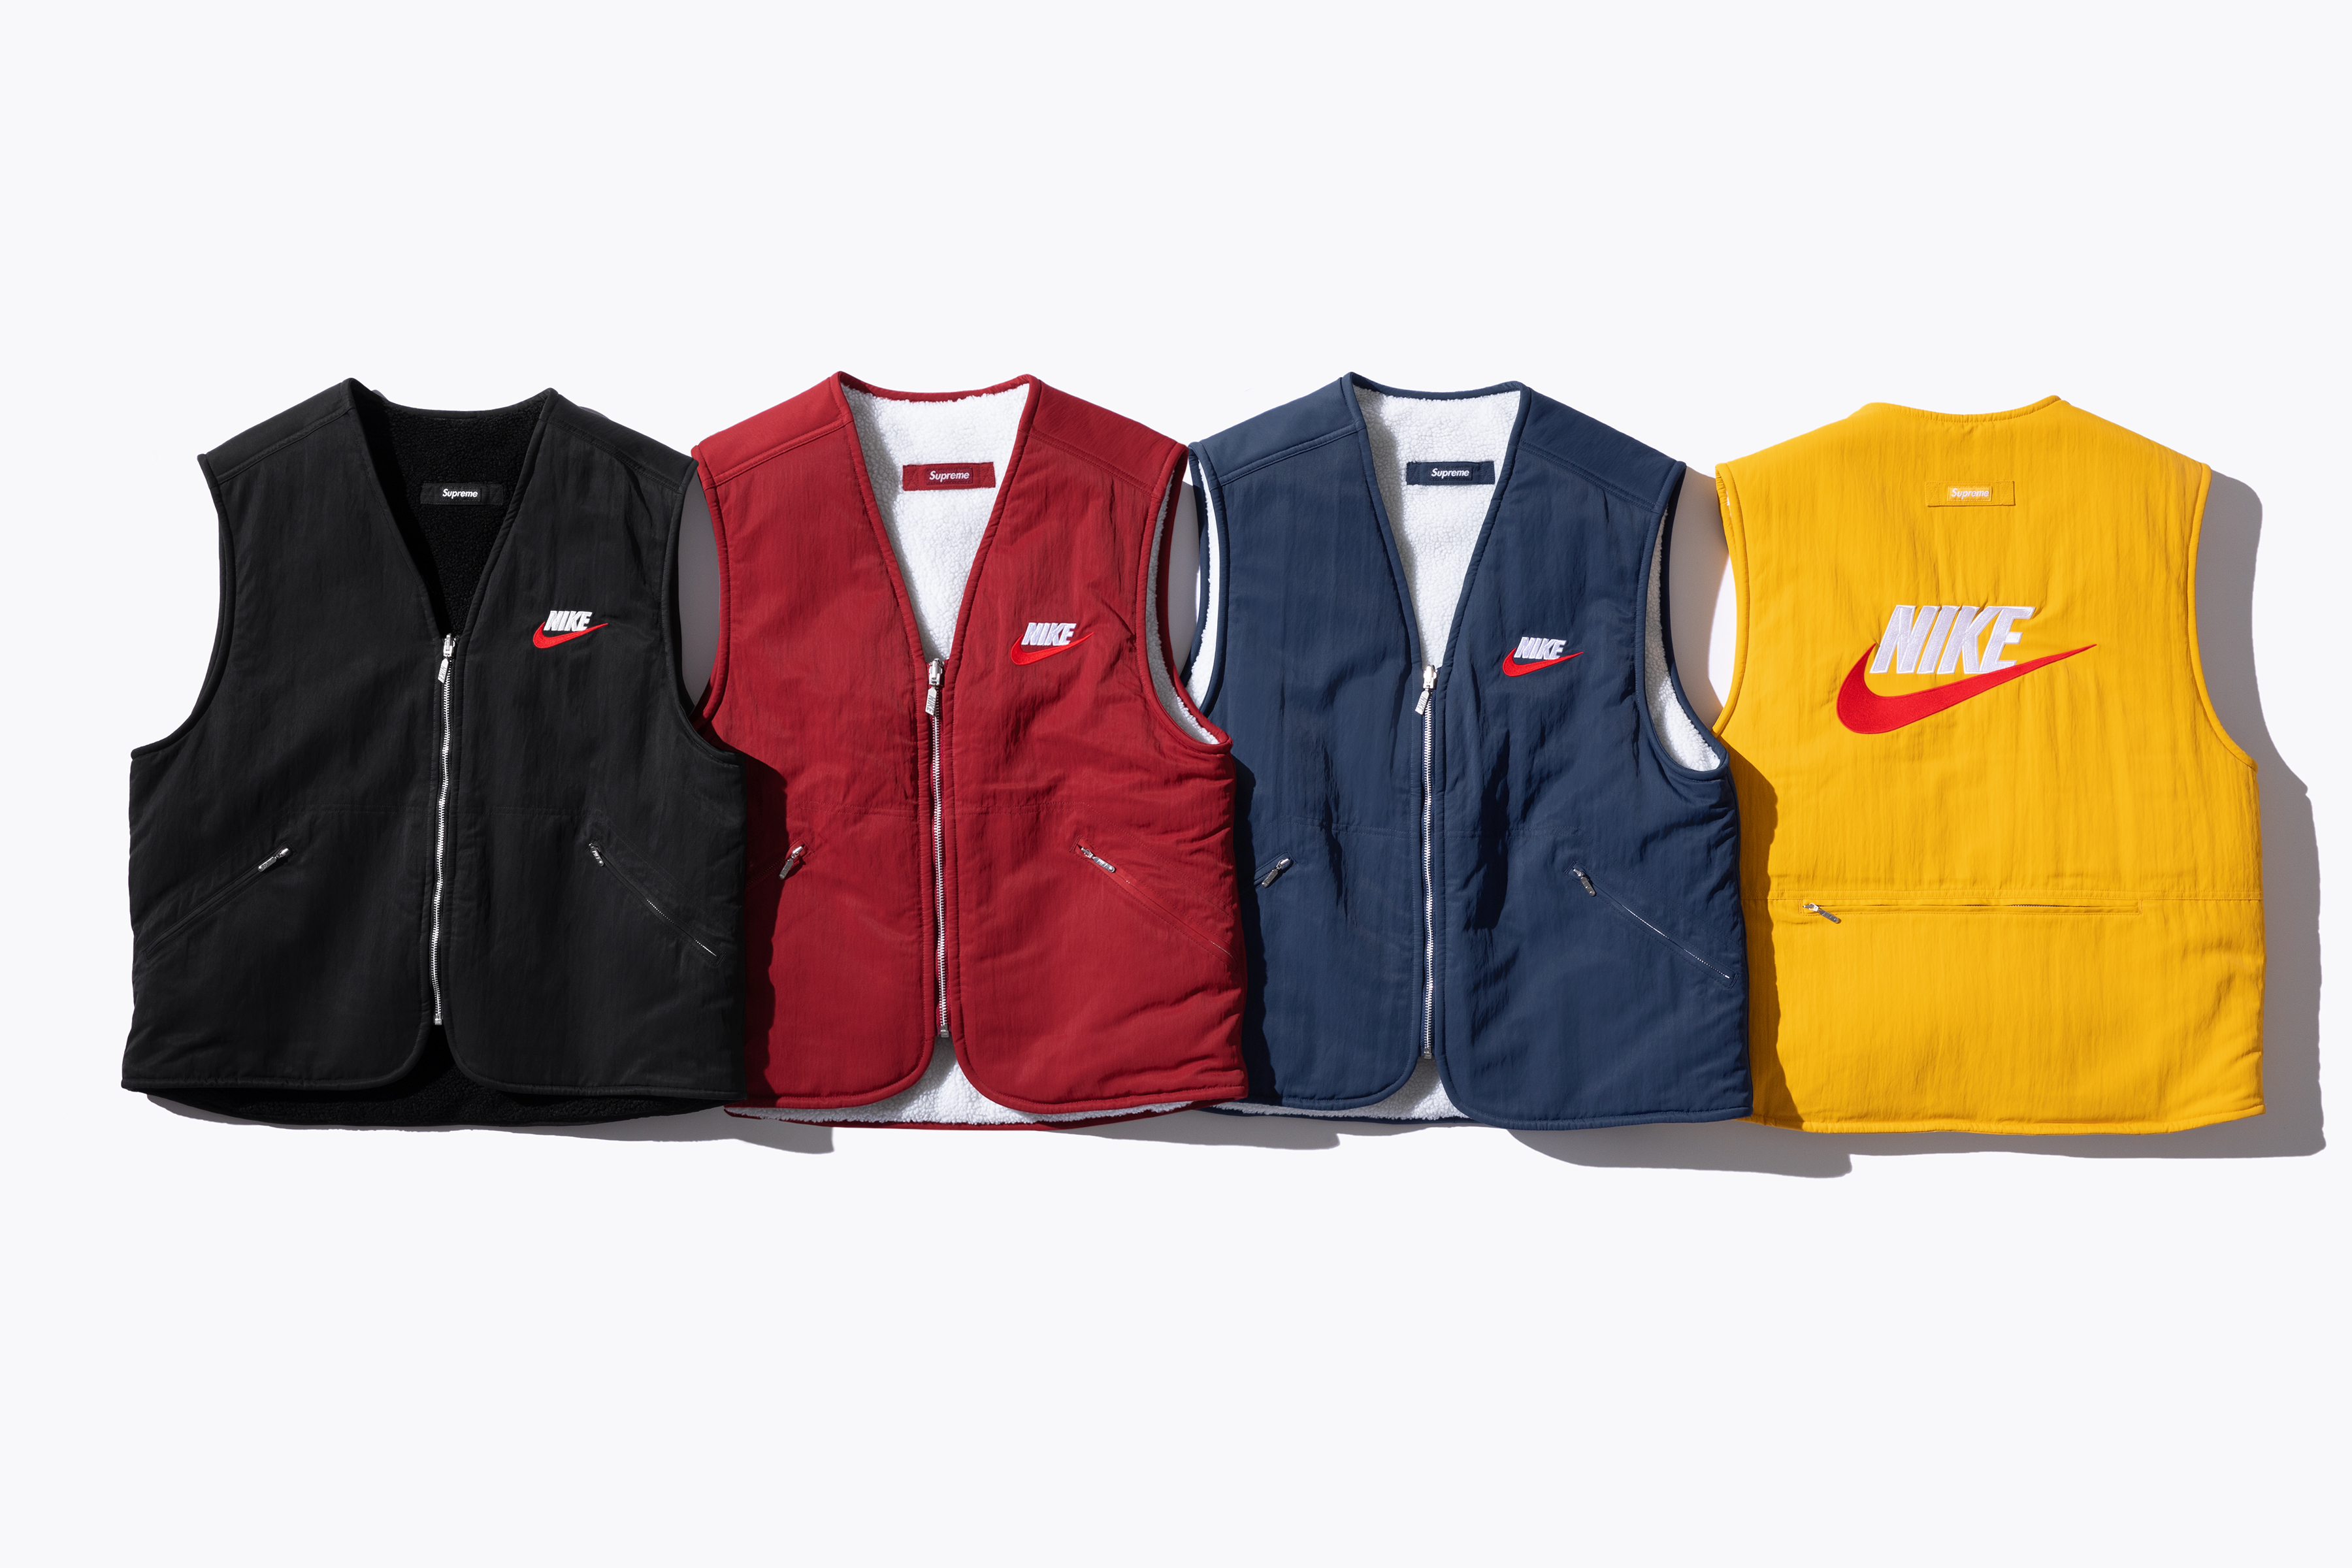 be508aadfaf9 Supreme x Nike collaboration preview pictures - gilets